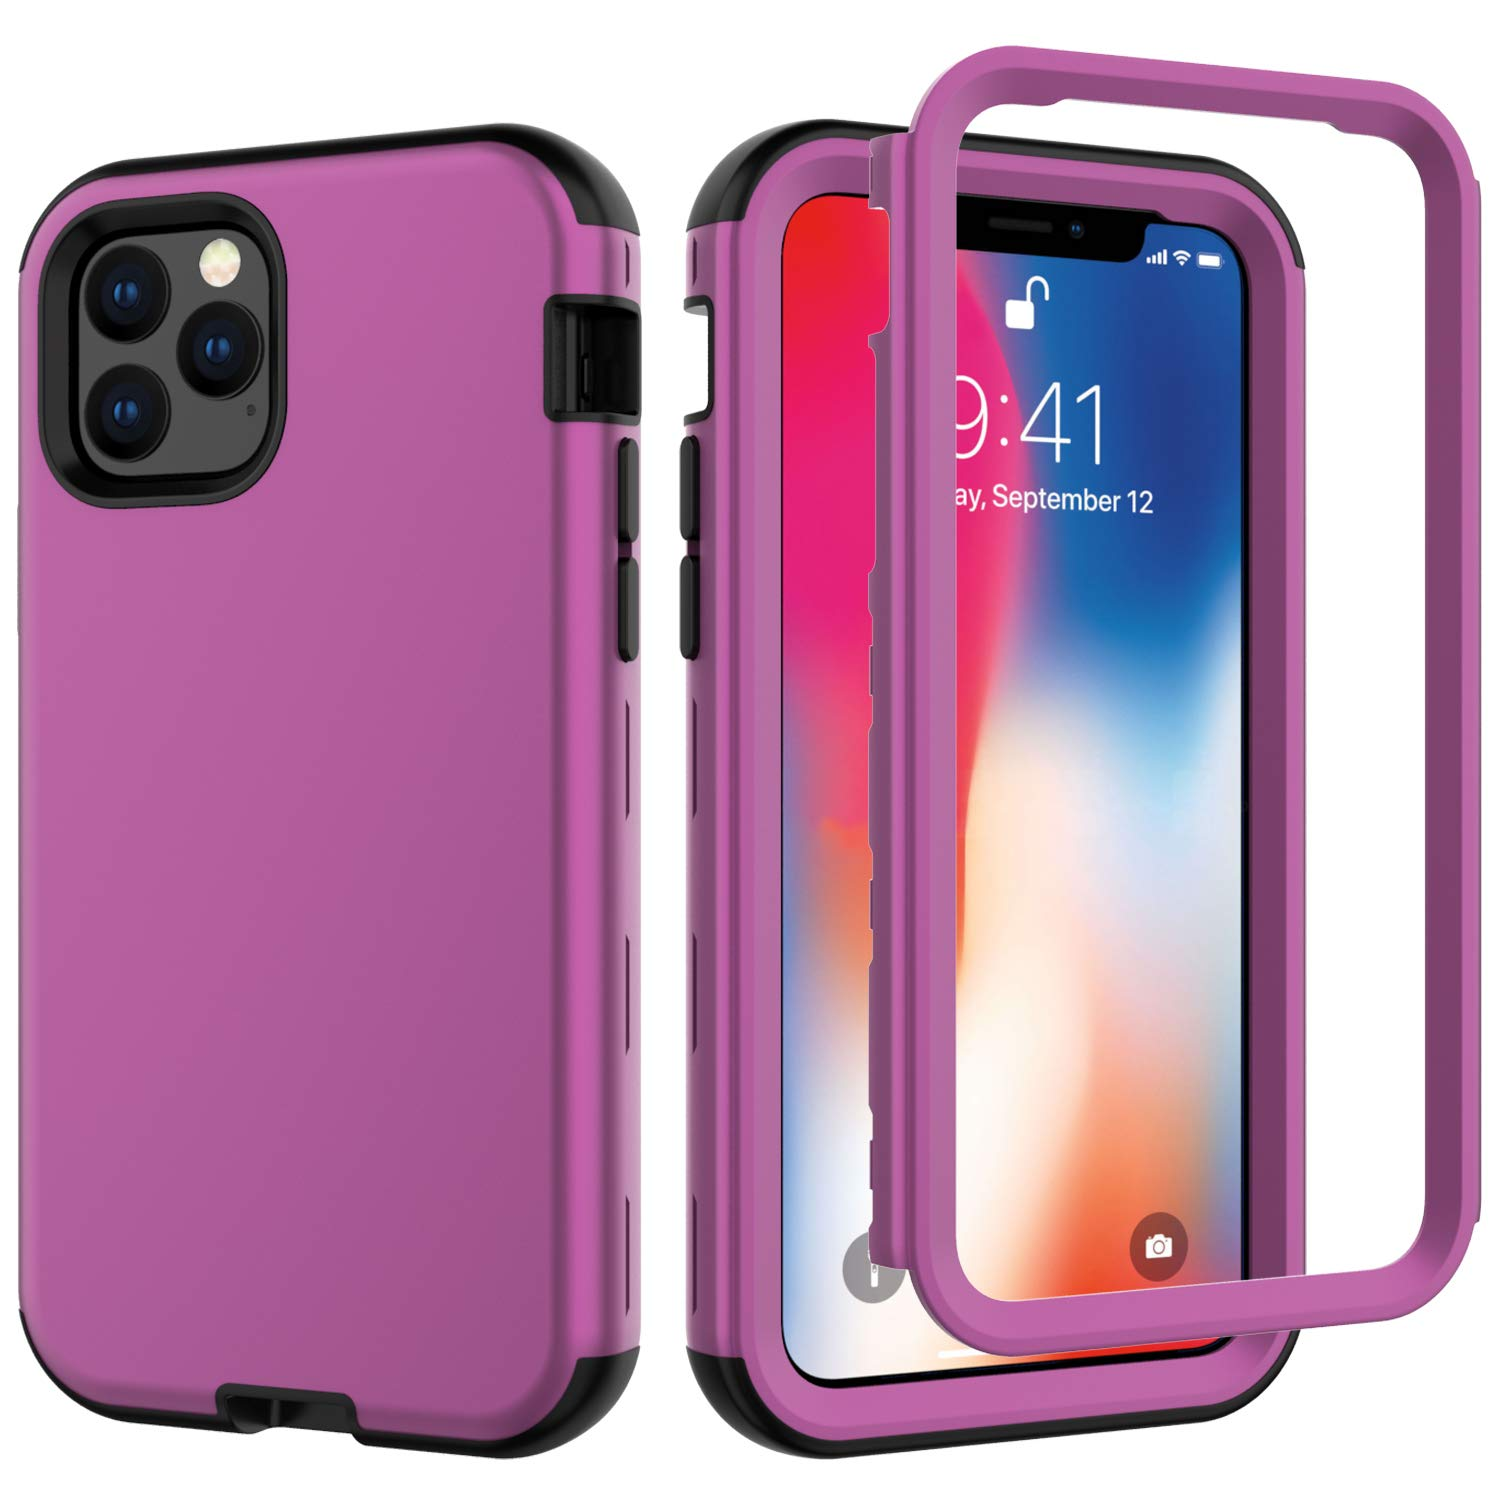 iPhone 11 Pro Max 2019 6.5 Case, Ranyi Rugged Full Body Protection 3 in 1 Hybrid Bumper Shock Absorbing High Impact Heavy Duty Resilient TPU Rubber Case for 2019 6.5 Inch iPhone 11 Pro Max (D Purple) by Ranyi